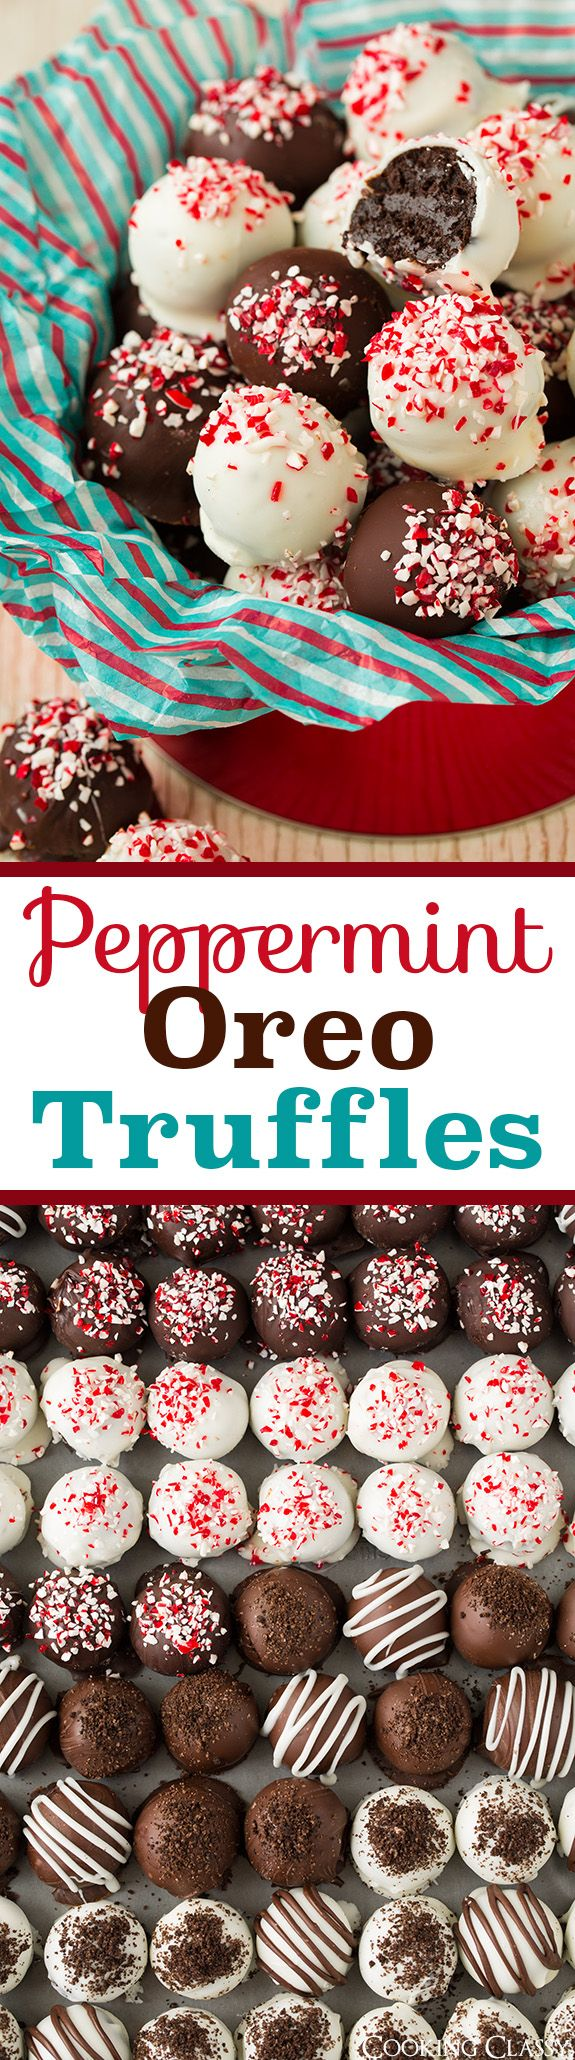 Peppermint Oreo Truffles - only 5 ingredients and they are DIVINE!! Always a hit anywhere I take them!